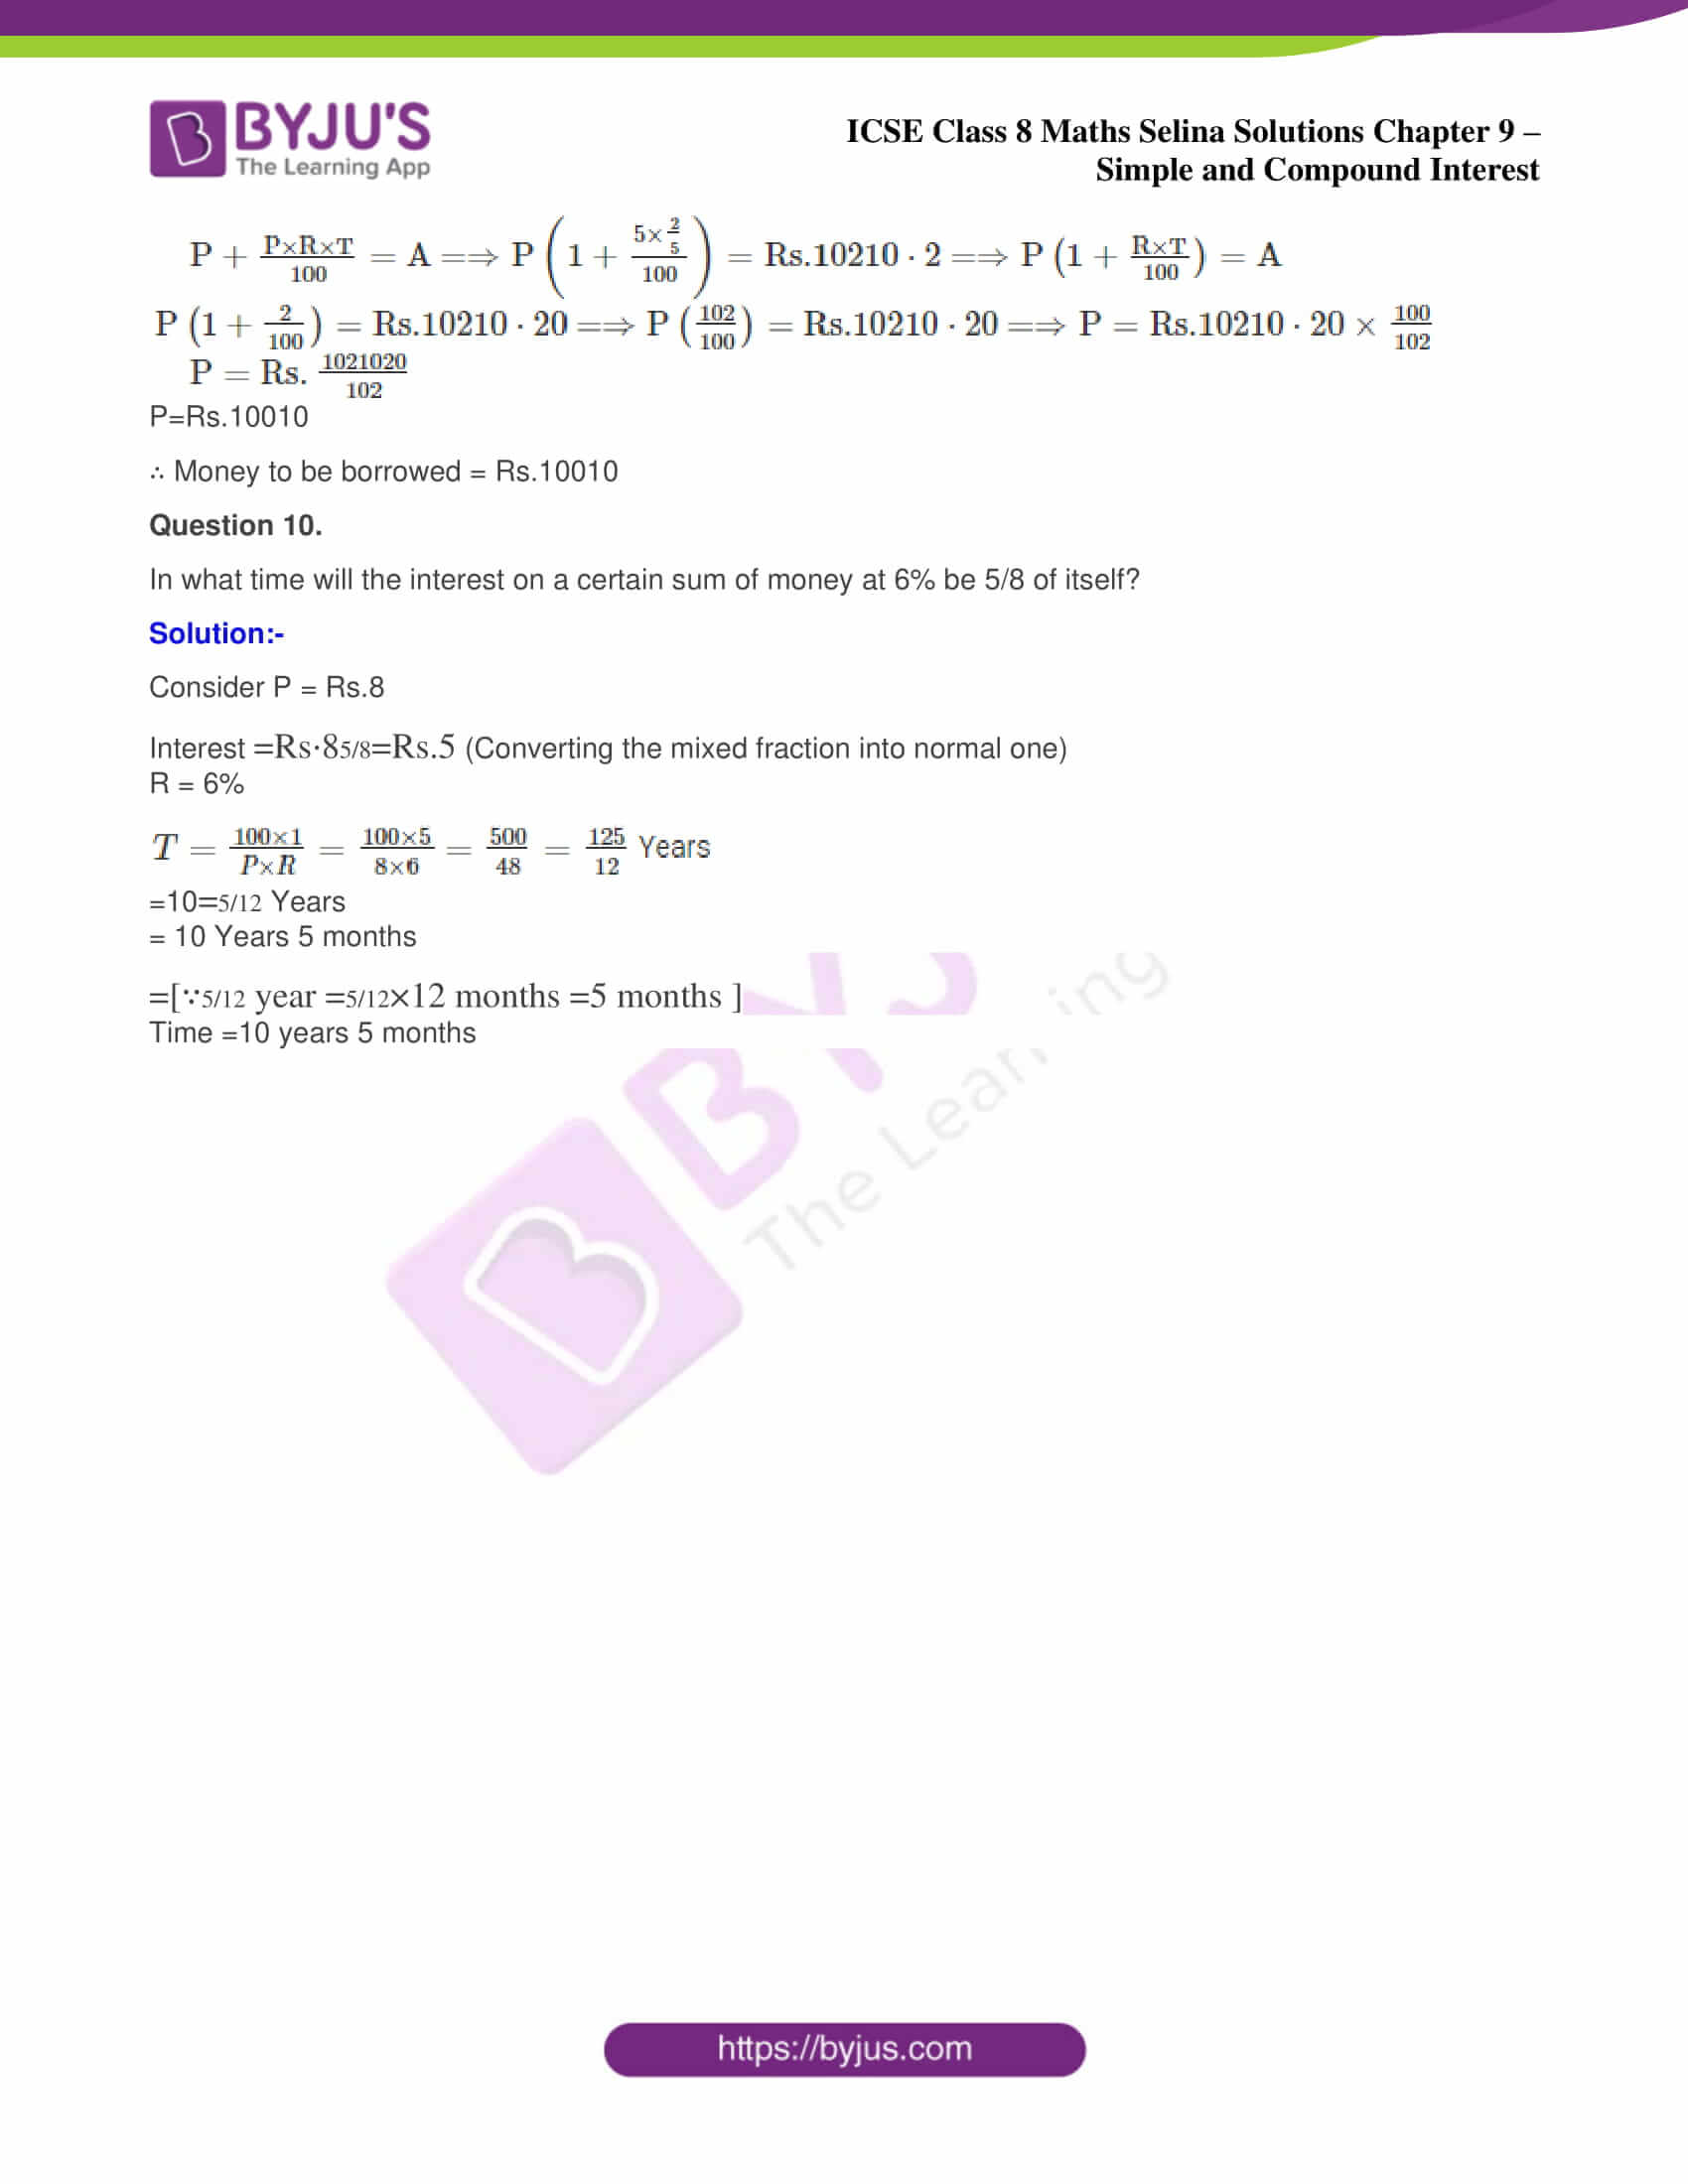 icse april7 class 8 maths selina solutions chapter 9 simple and compound interest 5